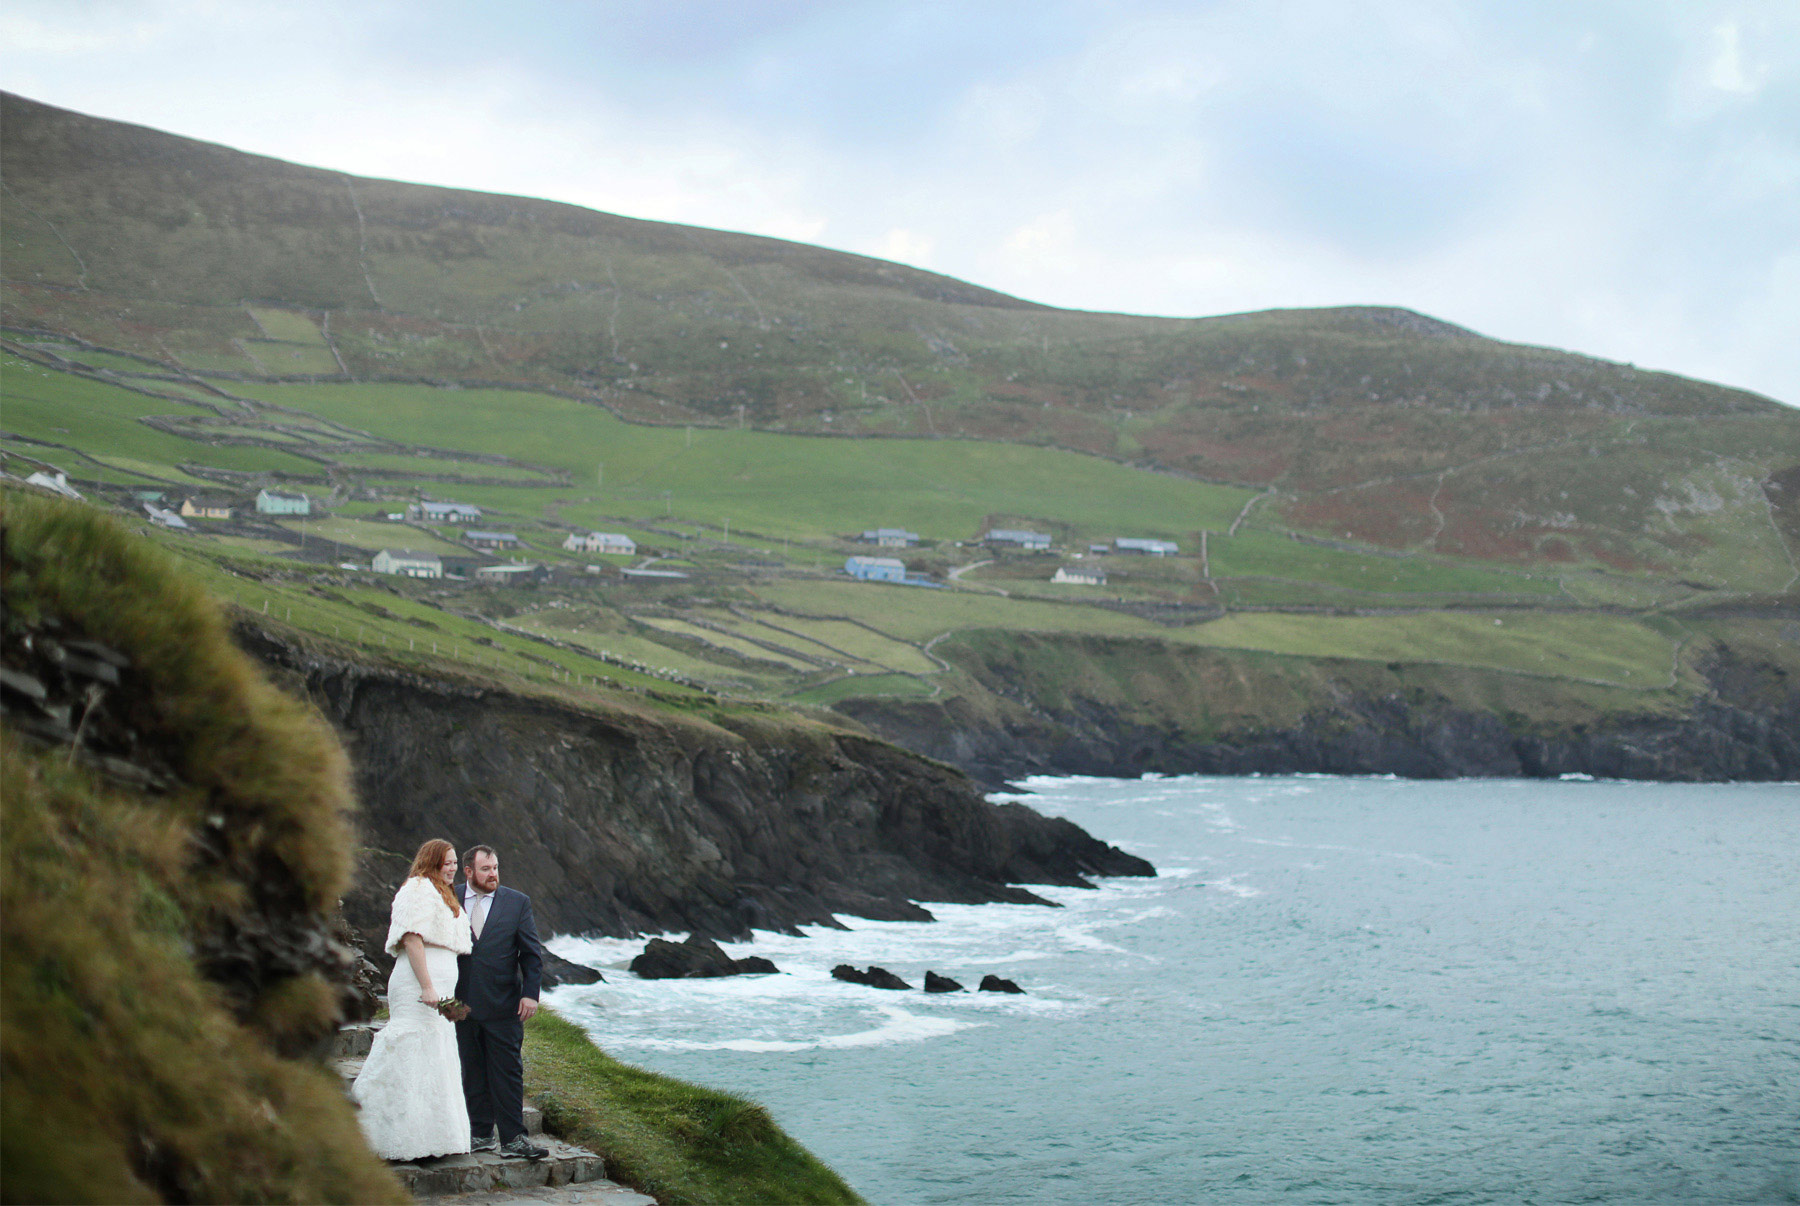 12-Kilarney-Ireland-Wedding-Photographer-by-Andrew-Vick-Photography-Fall-Autumn-Destination-Bride-Groom-Village-Landscape-Countryside-Ocean-Becca-and-Donal.jpg